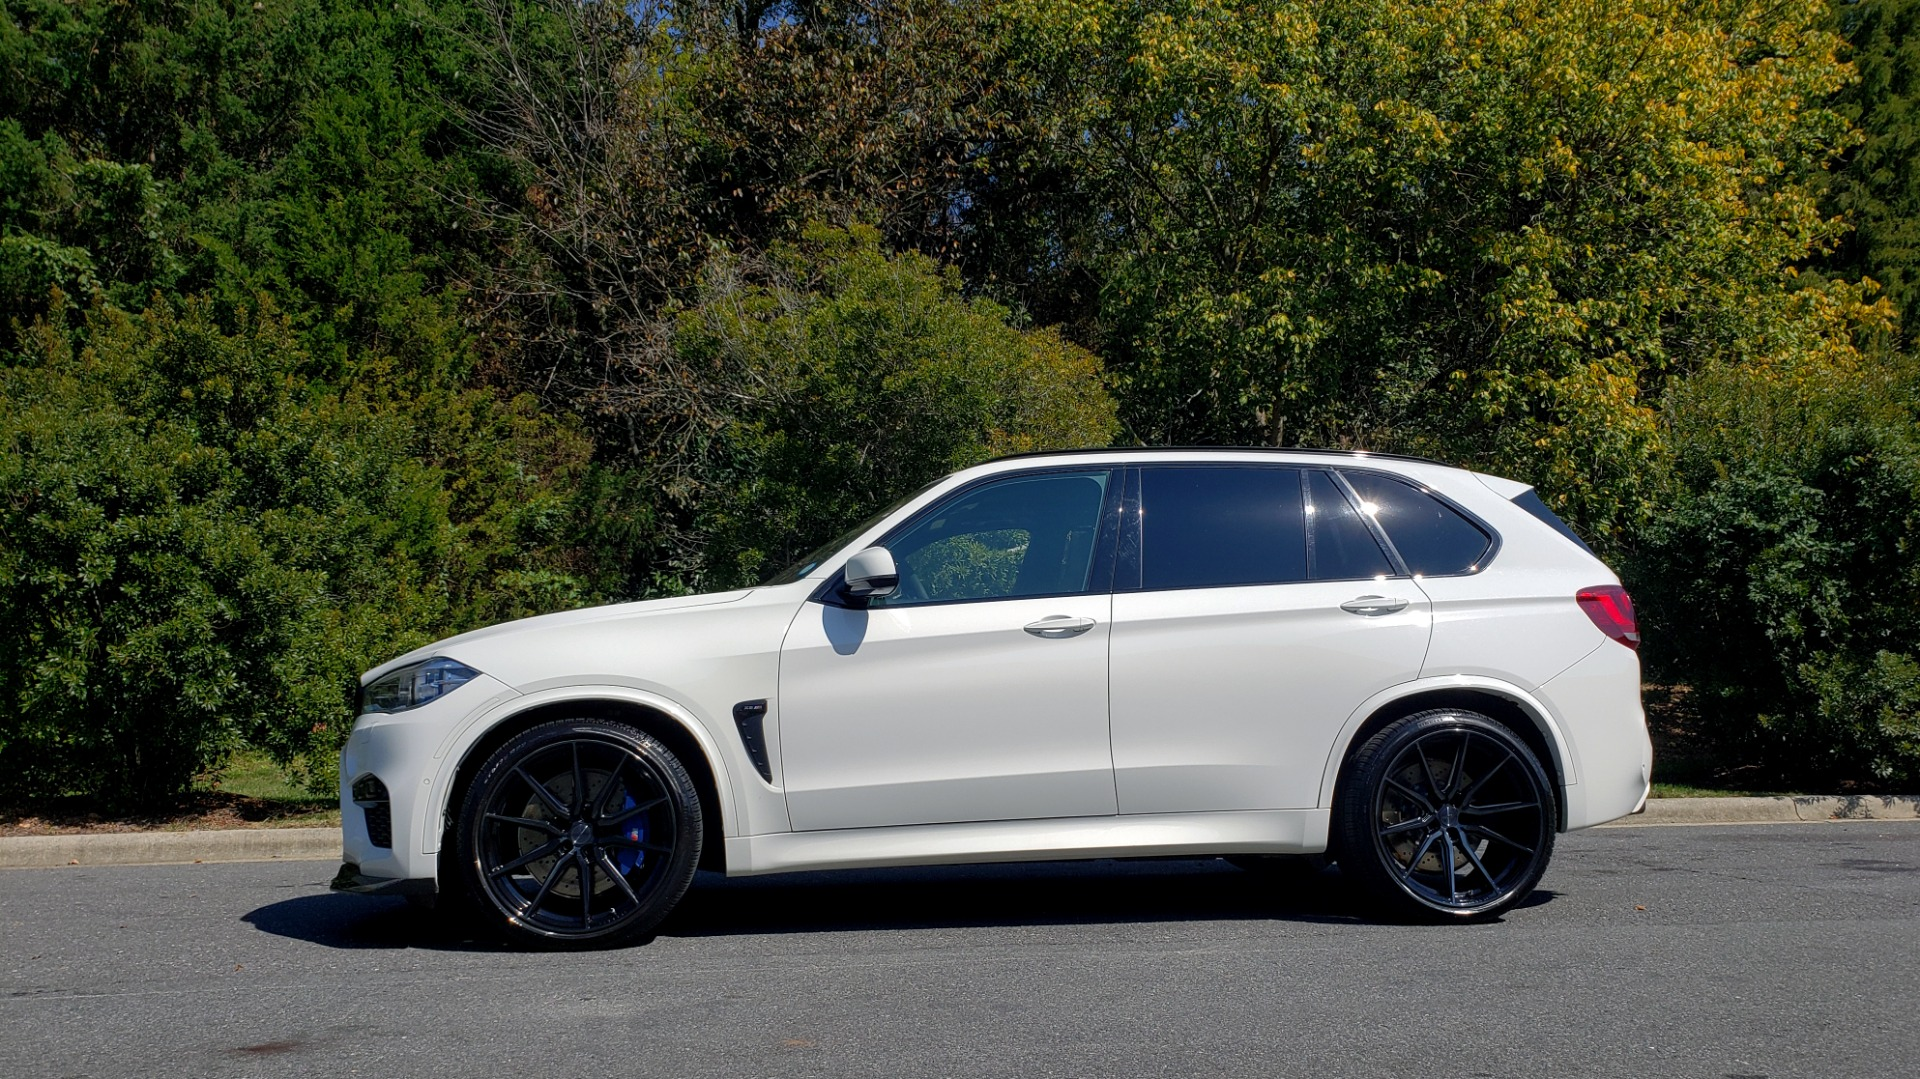 Used 2017 BMW X5 M SPORT / AWD / DRVR ASST / EXEC PKG / B&O SND / NIGHT VIS / PARK ASST for sale Sold at Formula Imports in Charlotte NC 28227 8